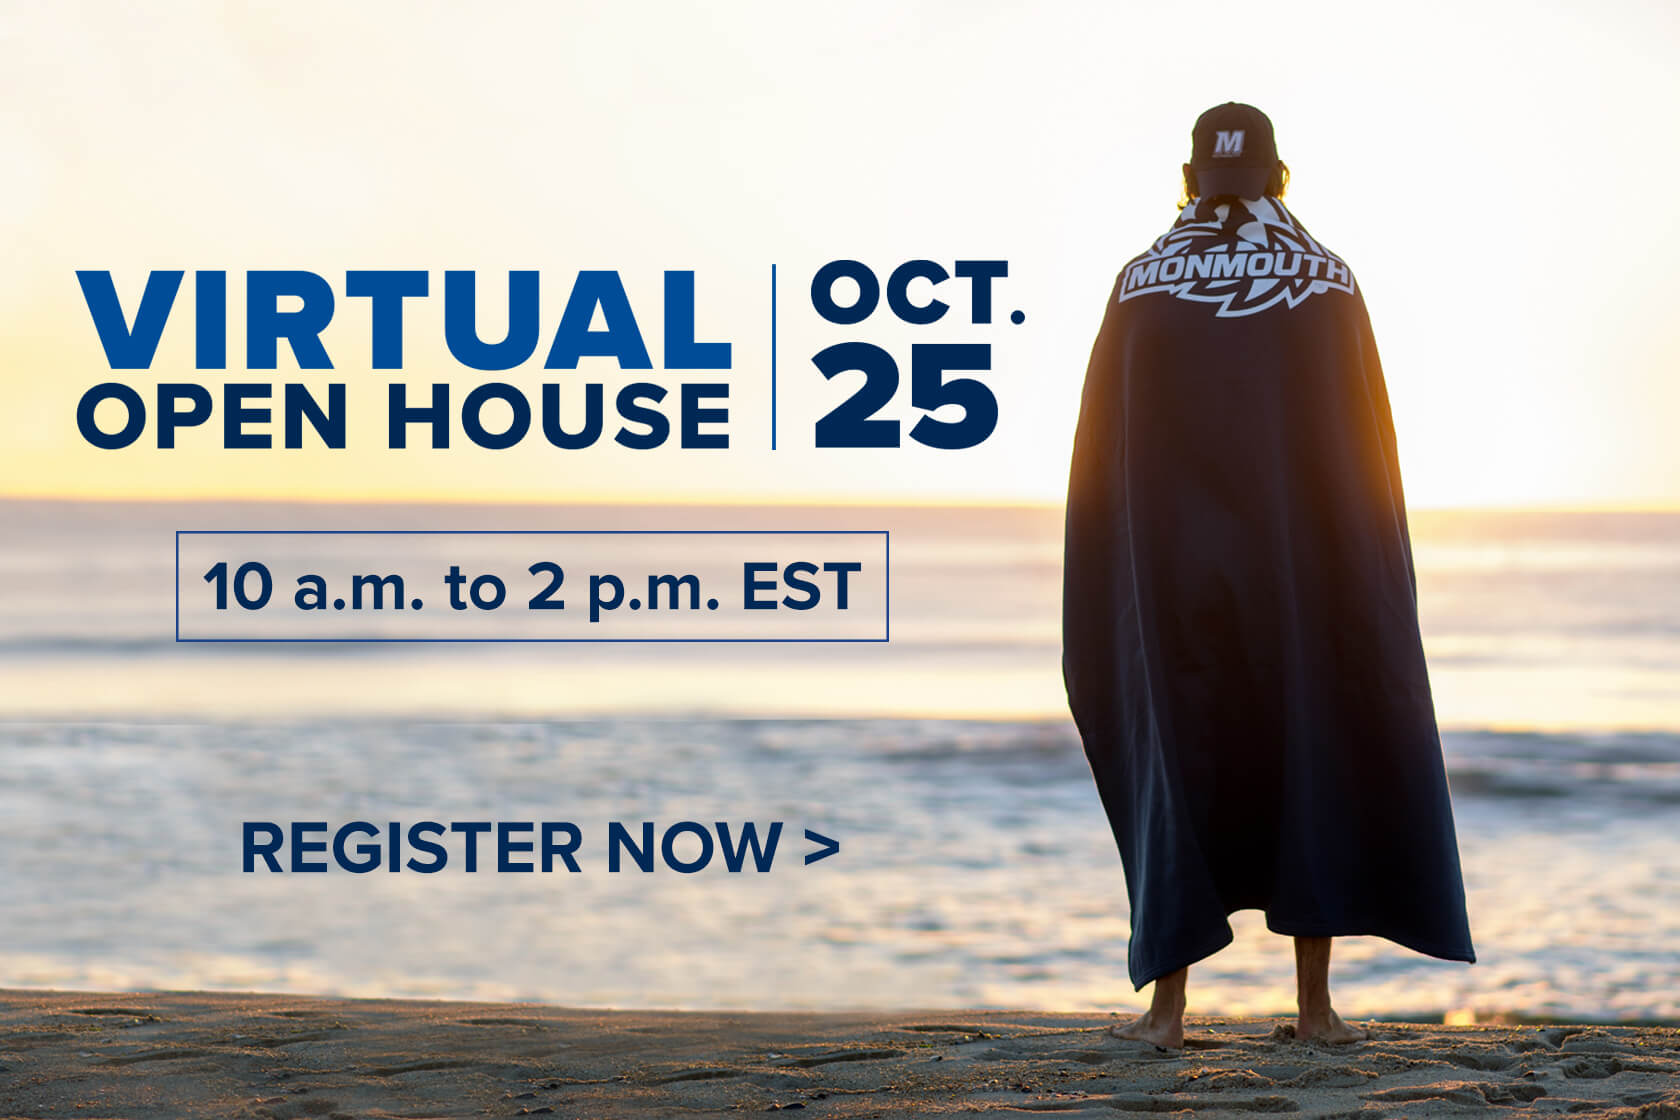 Register now for our virtual open house on October 25